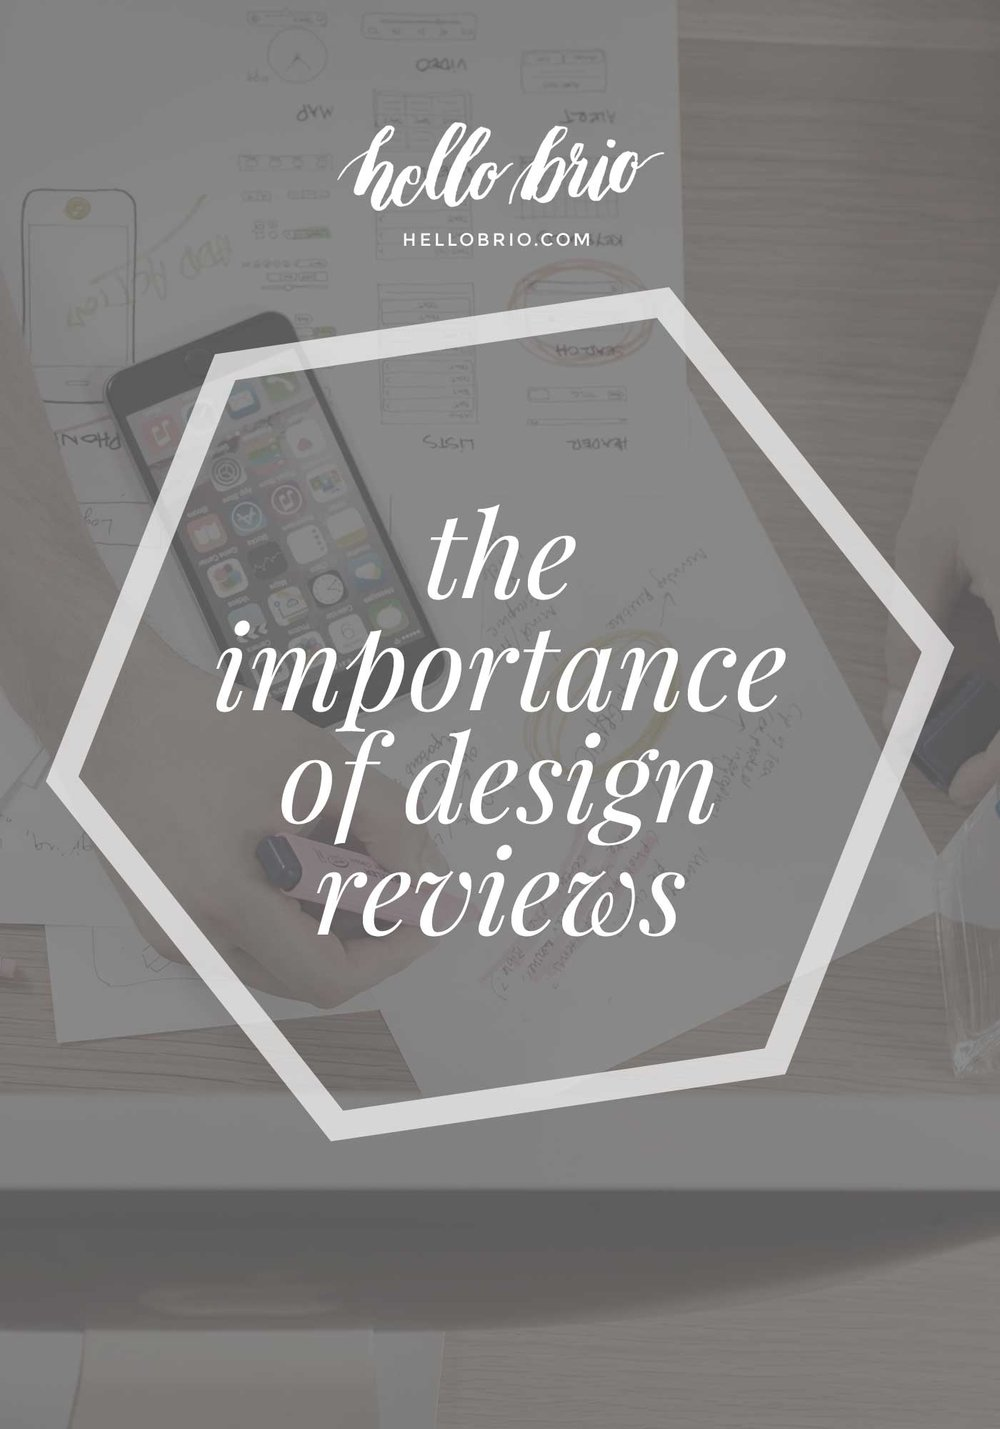 The importance of design reviews: giving criticism and getting feedback | UI UX Design, Web Design, Graphic Design